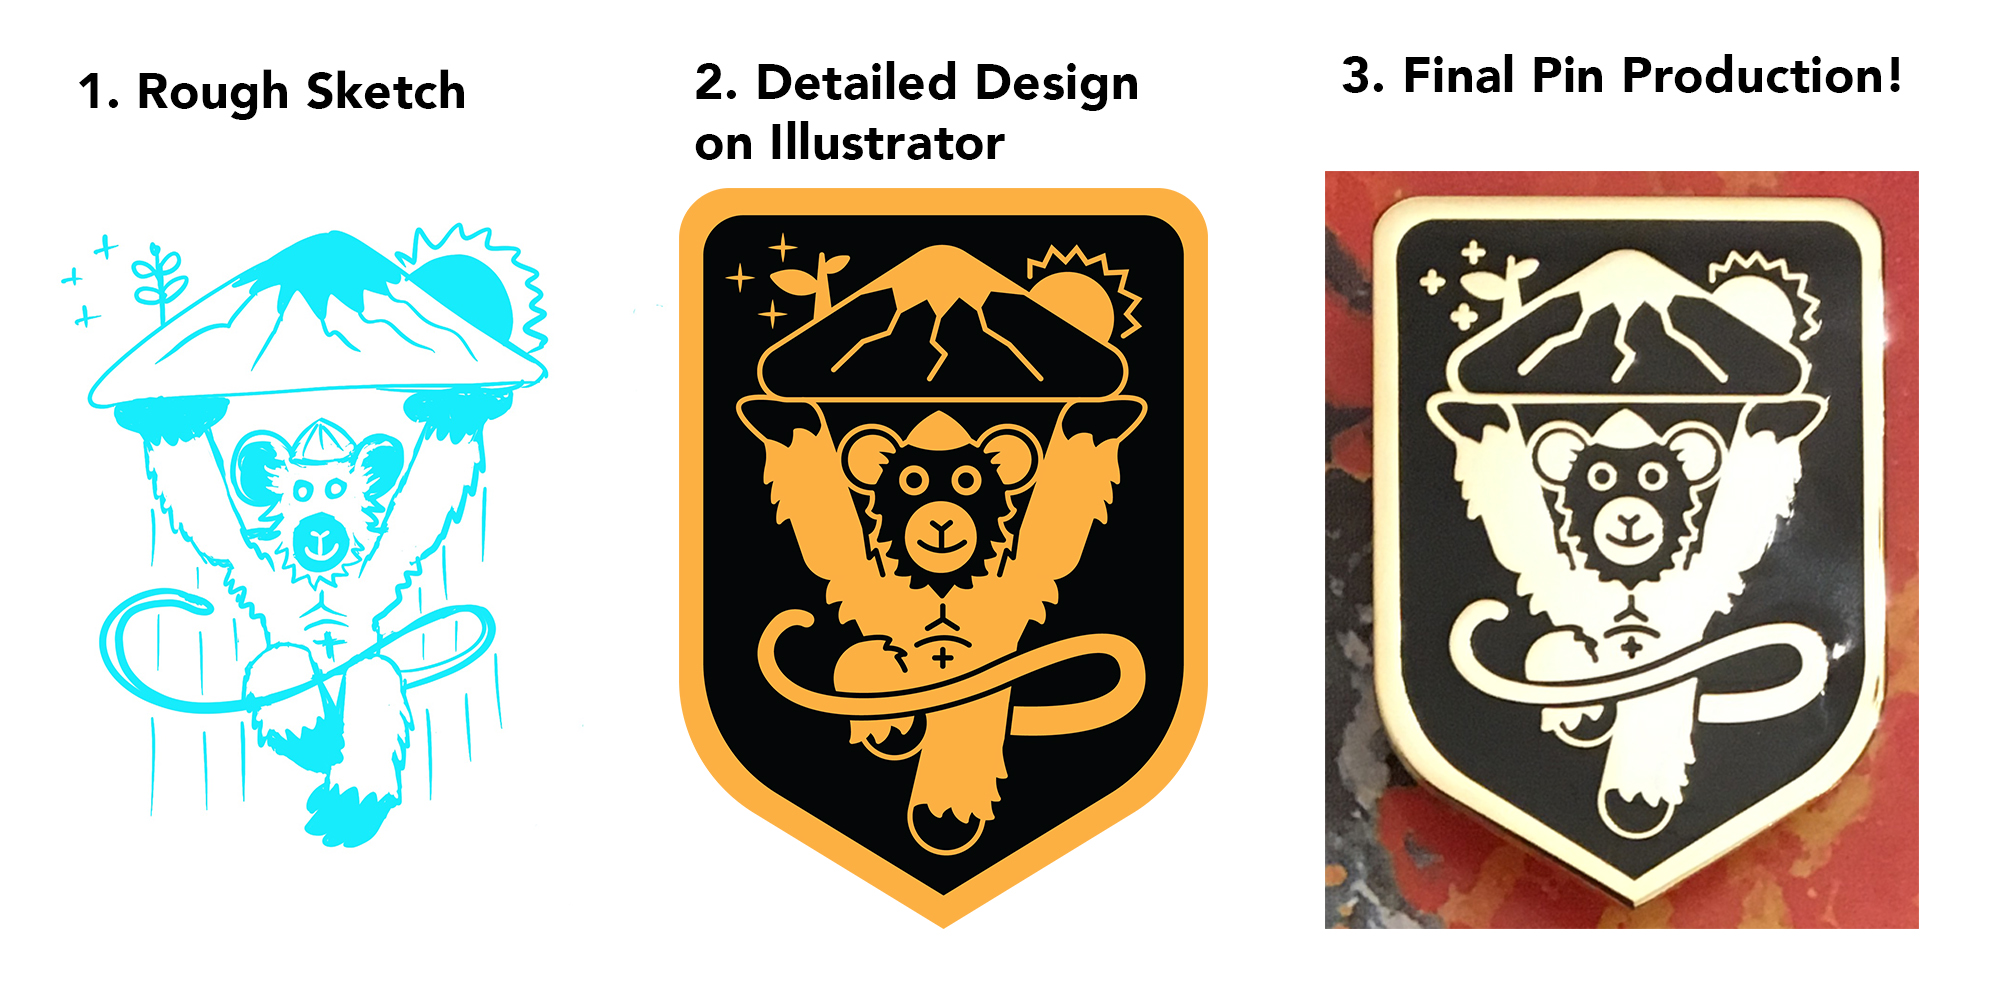 The design process from rough sketch to vectorizing in Illustrator to final pin production